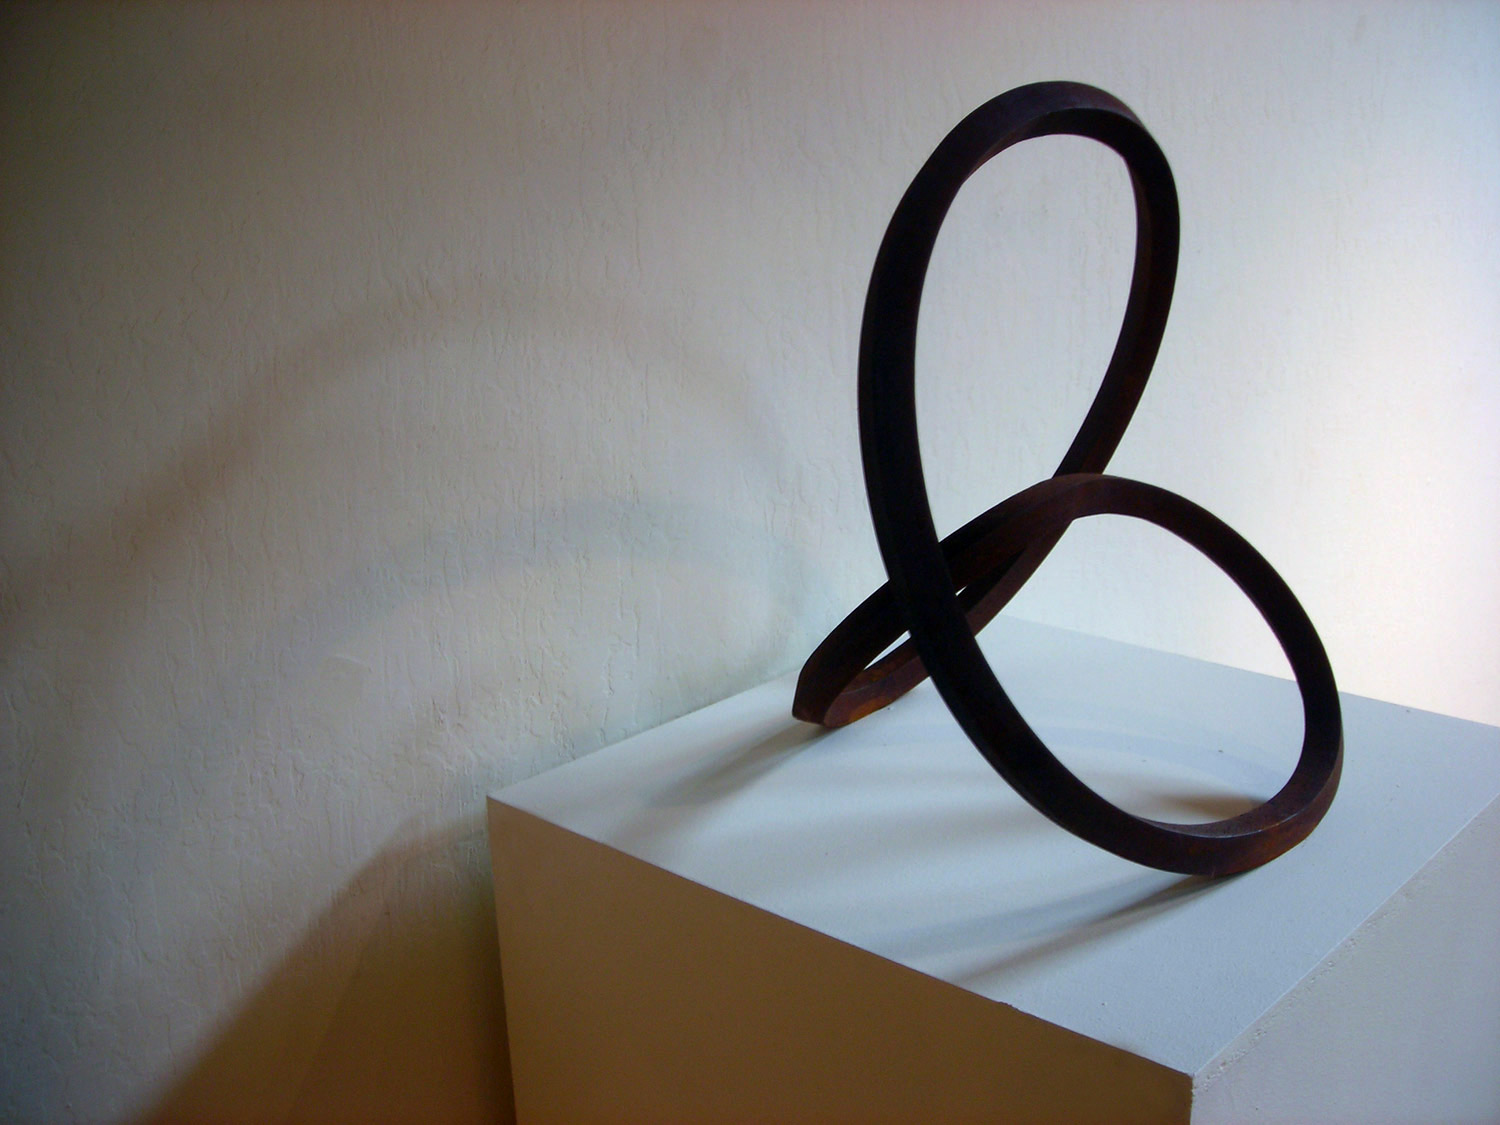 Roger Berry - <b>Clover (Maquette)</b>, 2003, corten steel, 20 x 21 x 15 inches